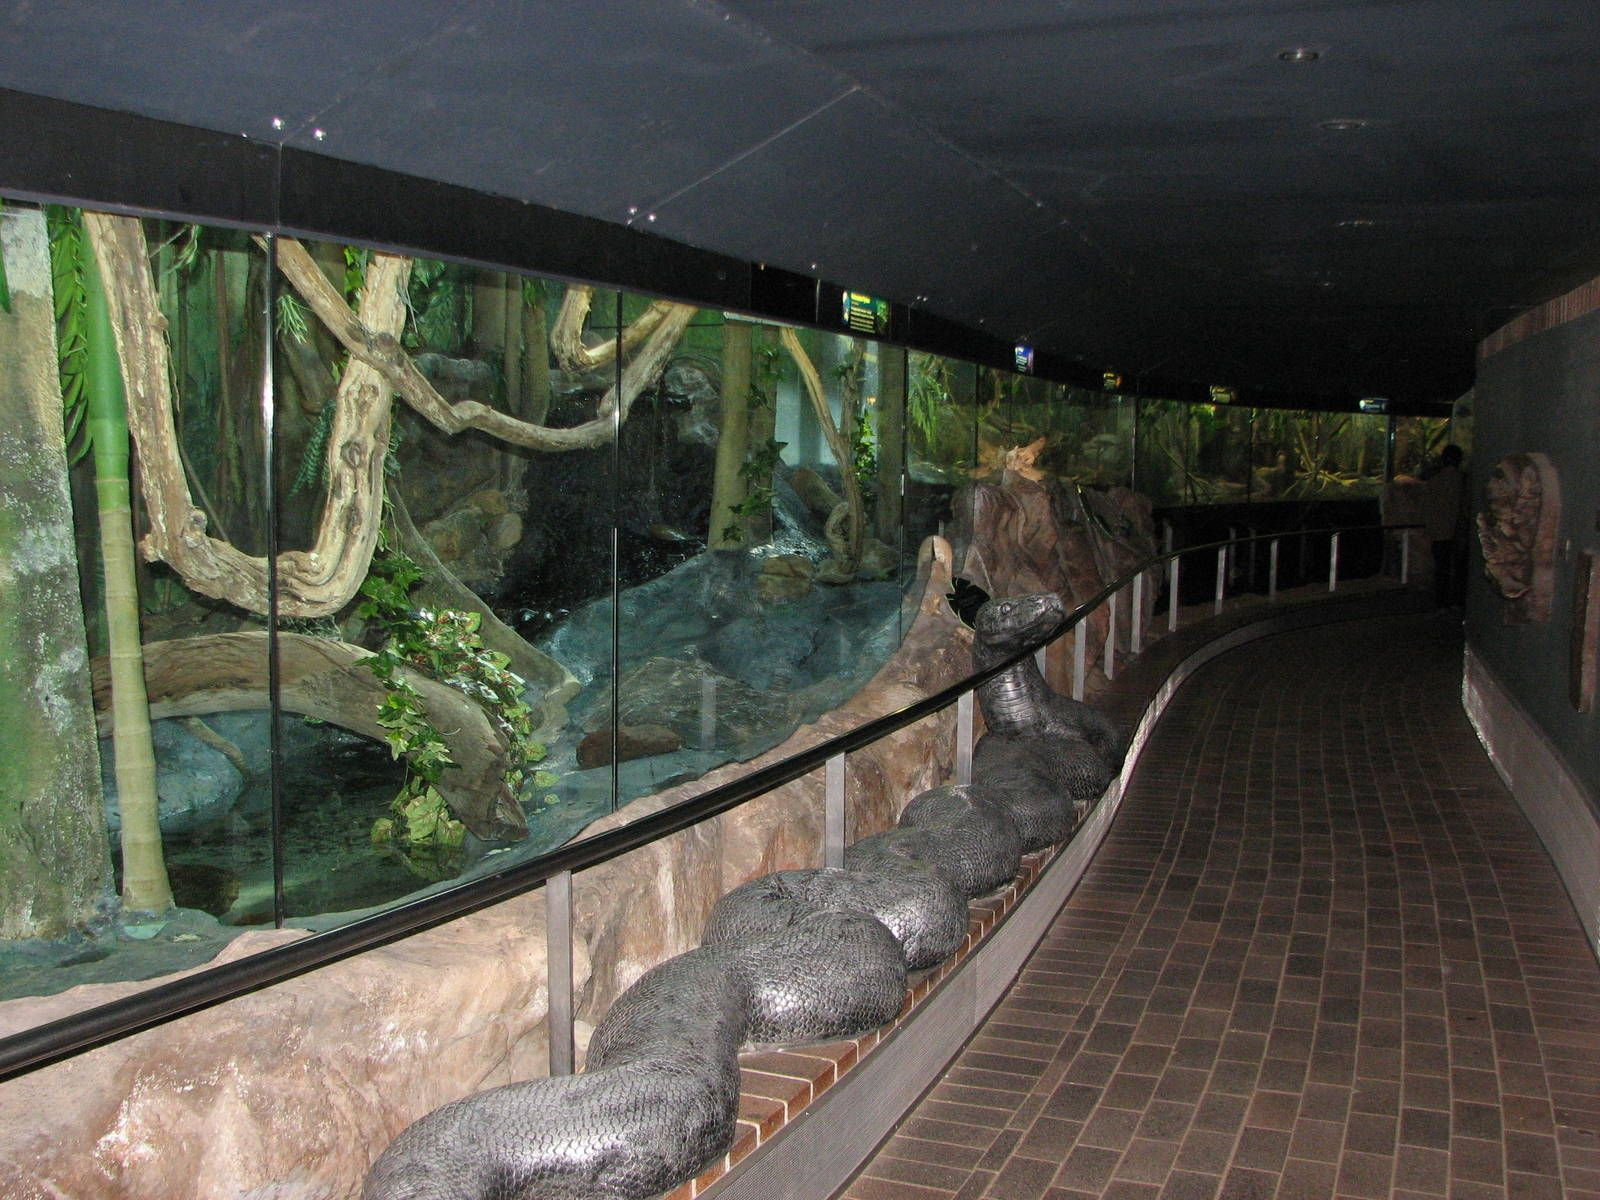 San Diego Zoo Reptile House Google Search Zoos